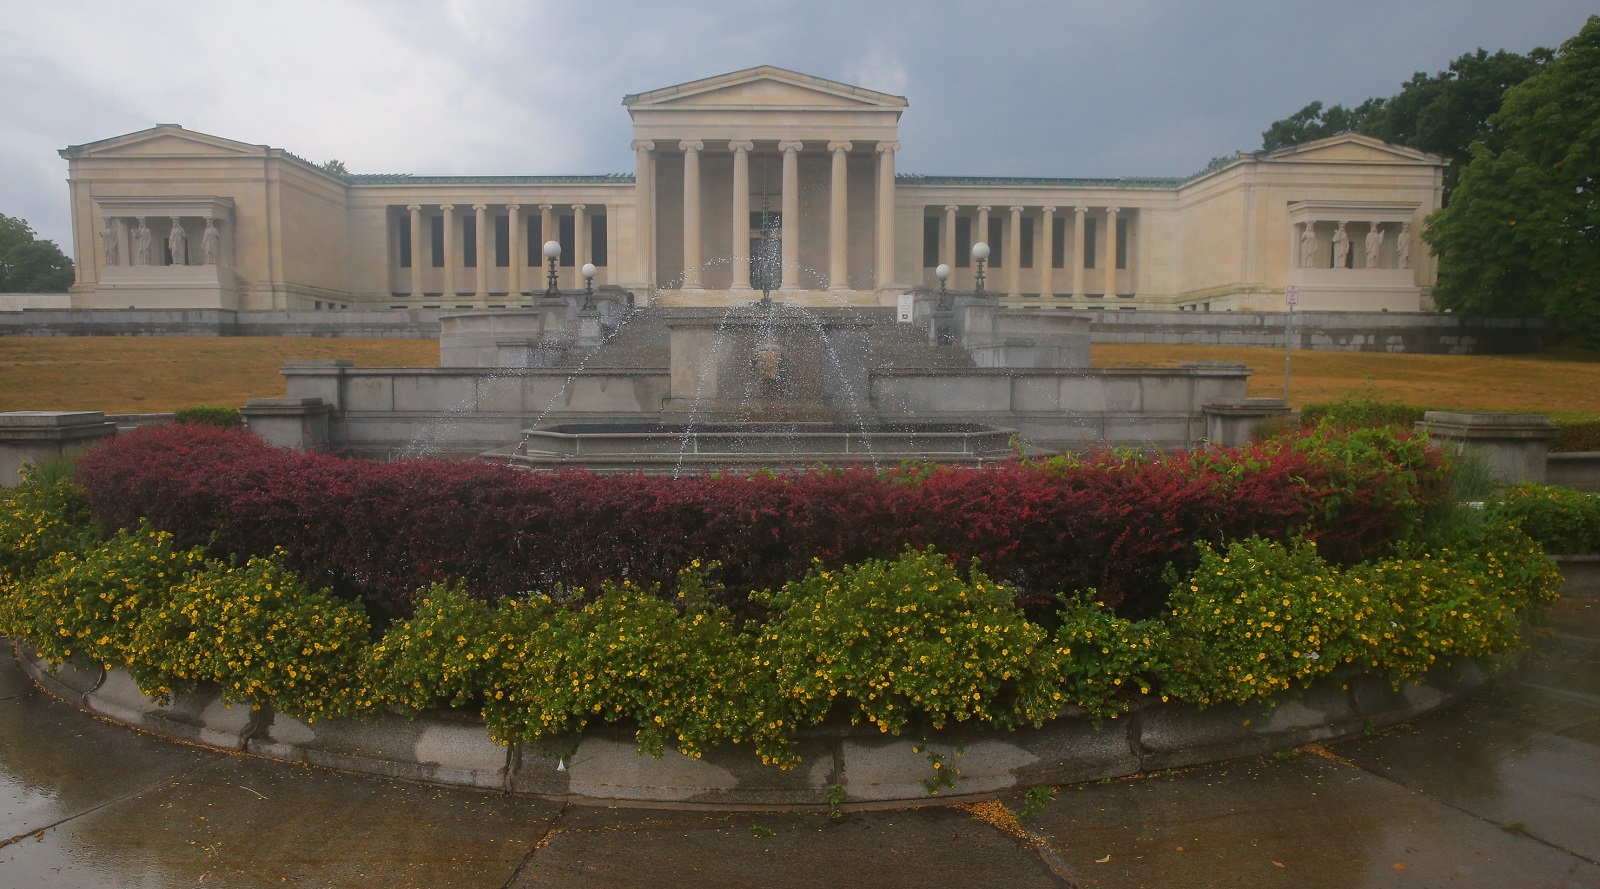 The Albright-Knox Art Gallery will host an Art of Yoga class at 3 p.m. on Tuesday. (John Hickey/News file photo)